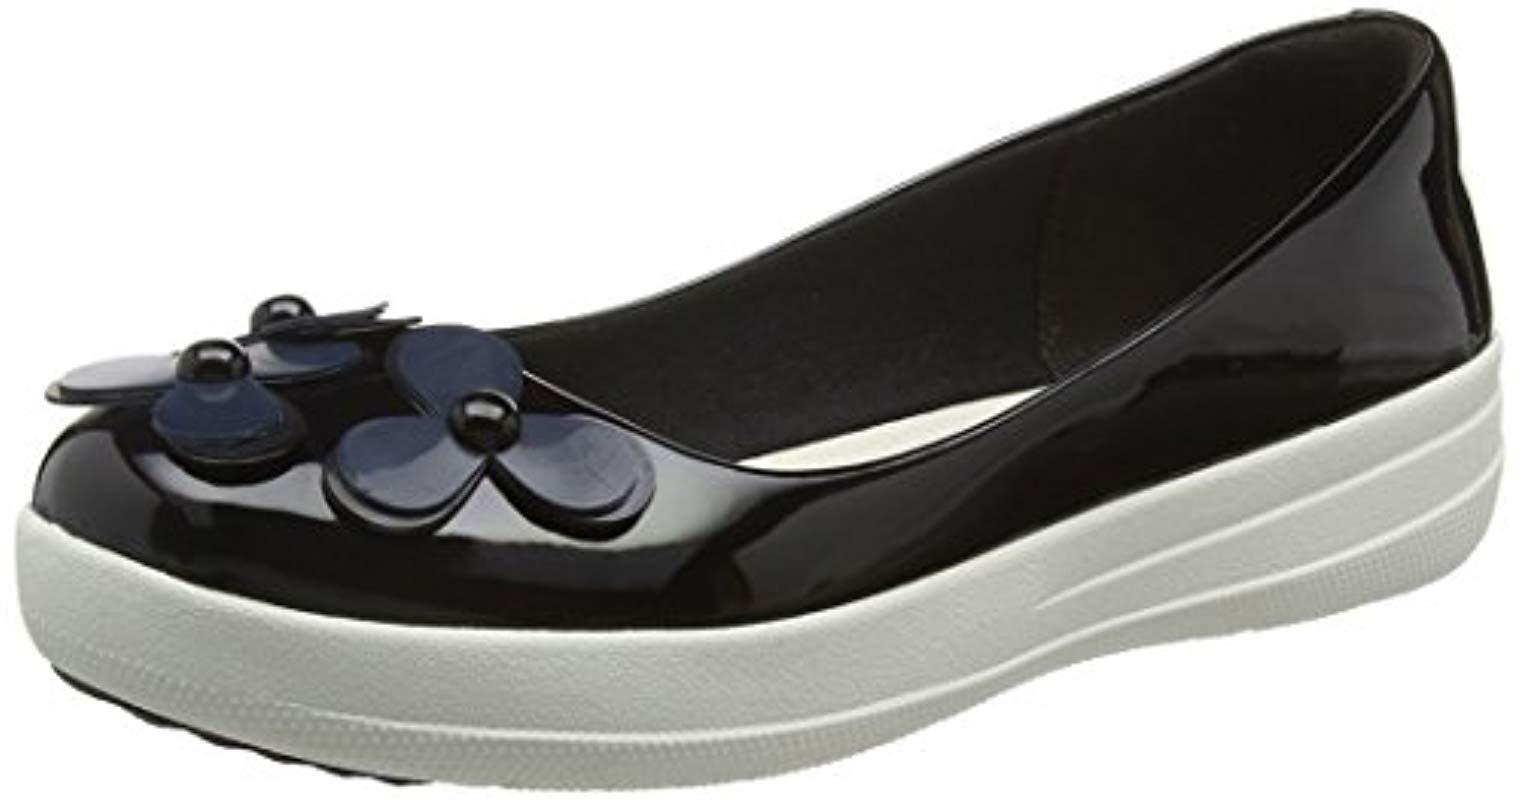 abe3caf97c5d64 Fitflop F-sporty Flower Ballerina Ballet Flats in Black - Lyst